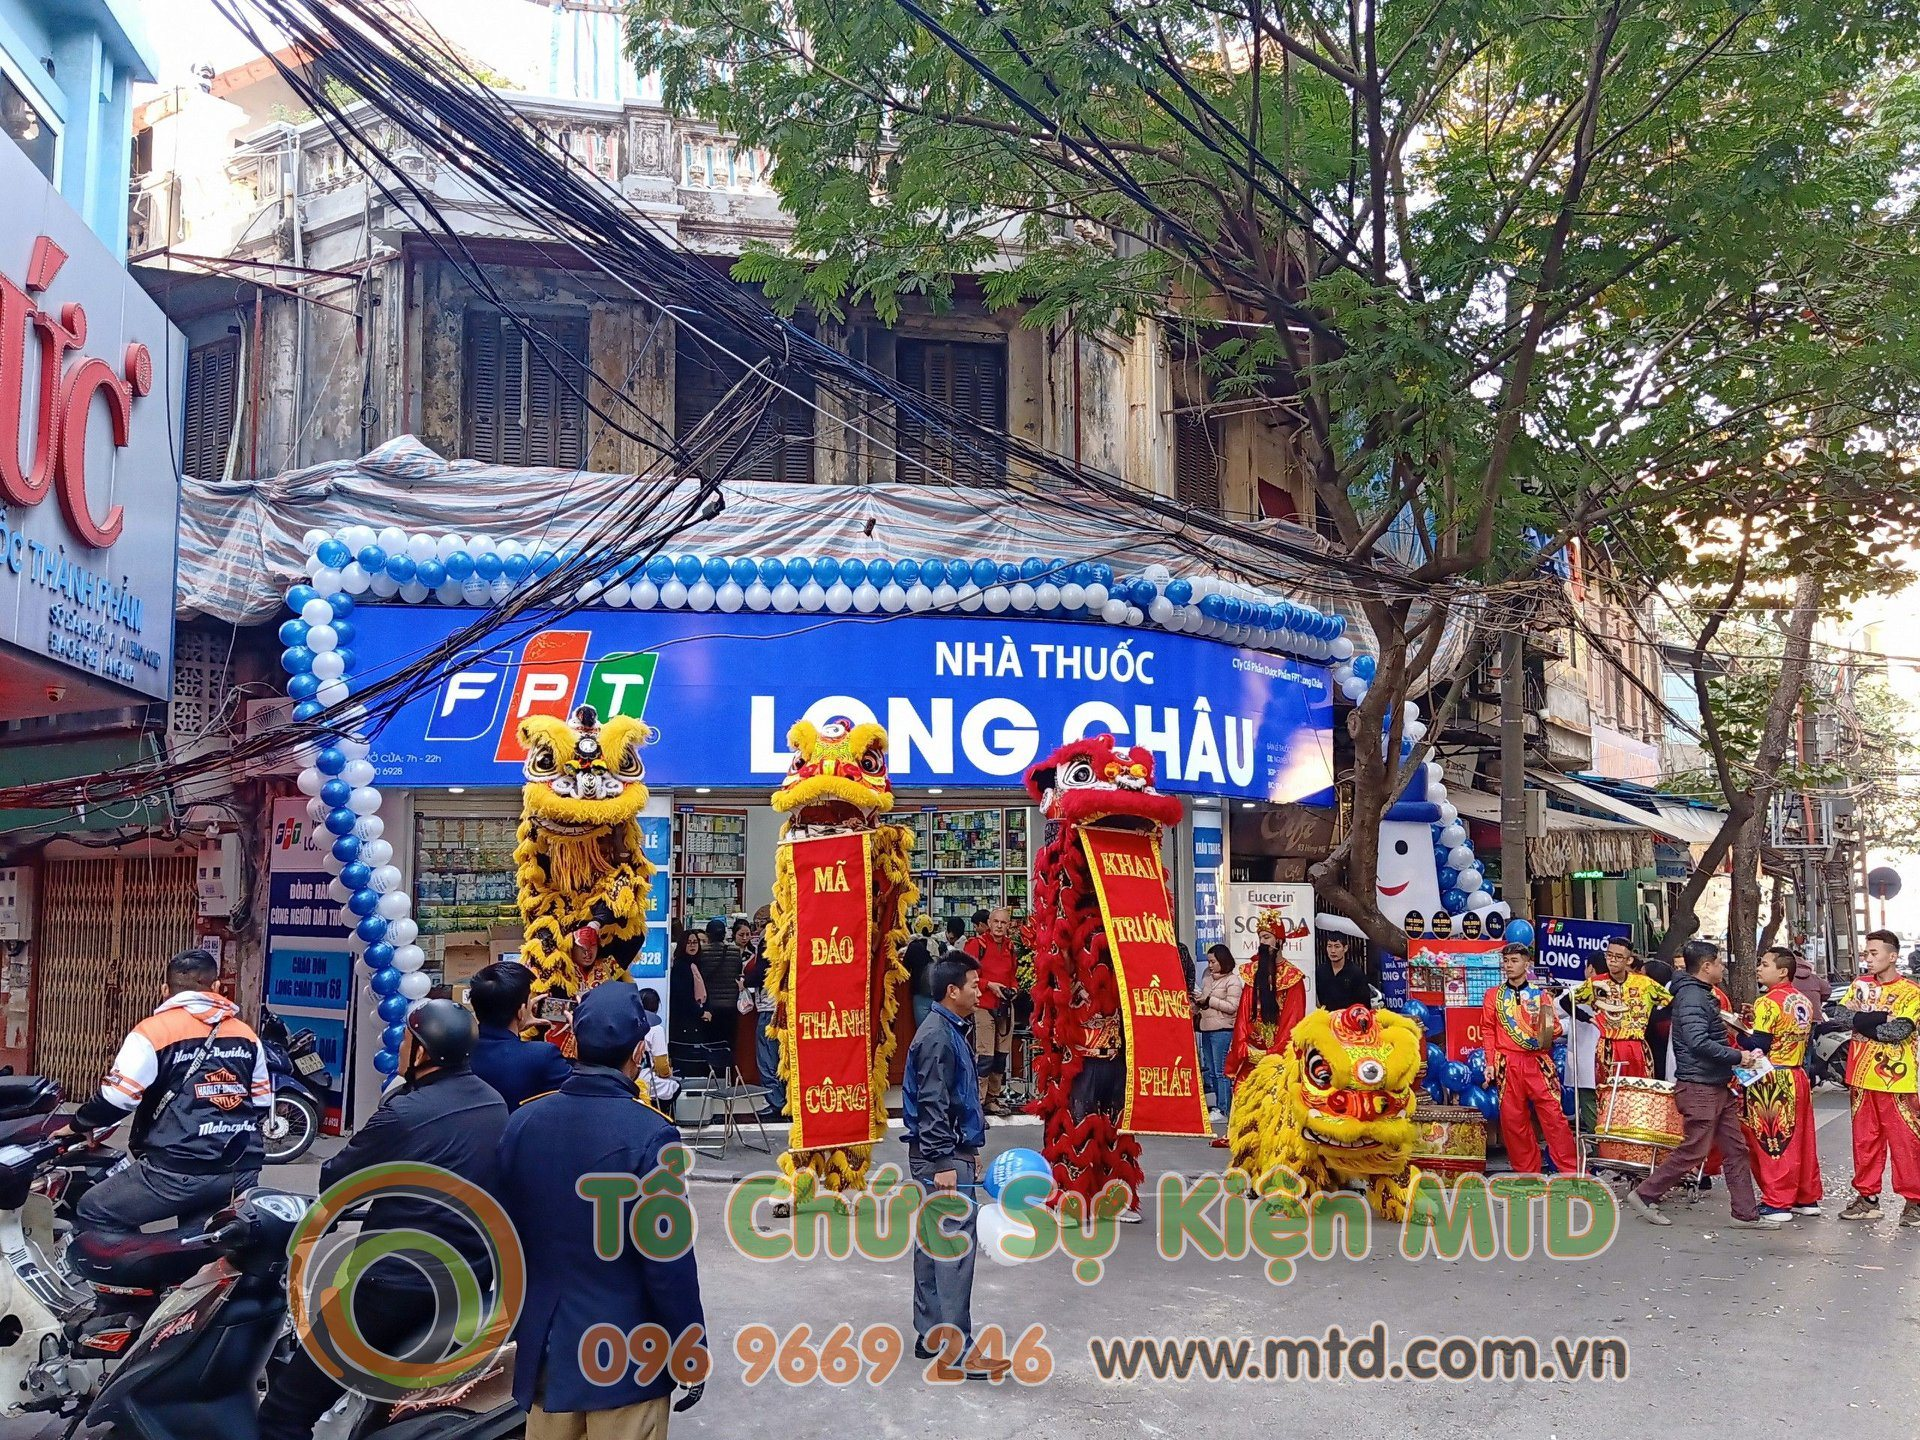 road-show-long-chau-hang-ma-1